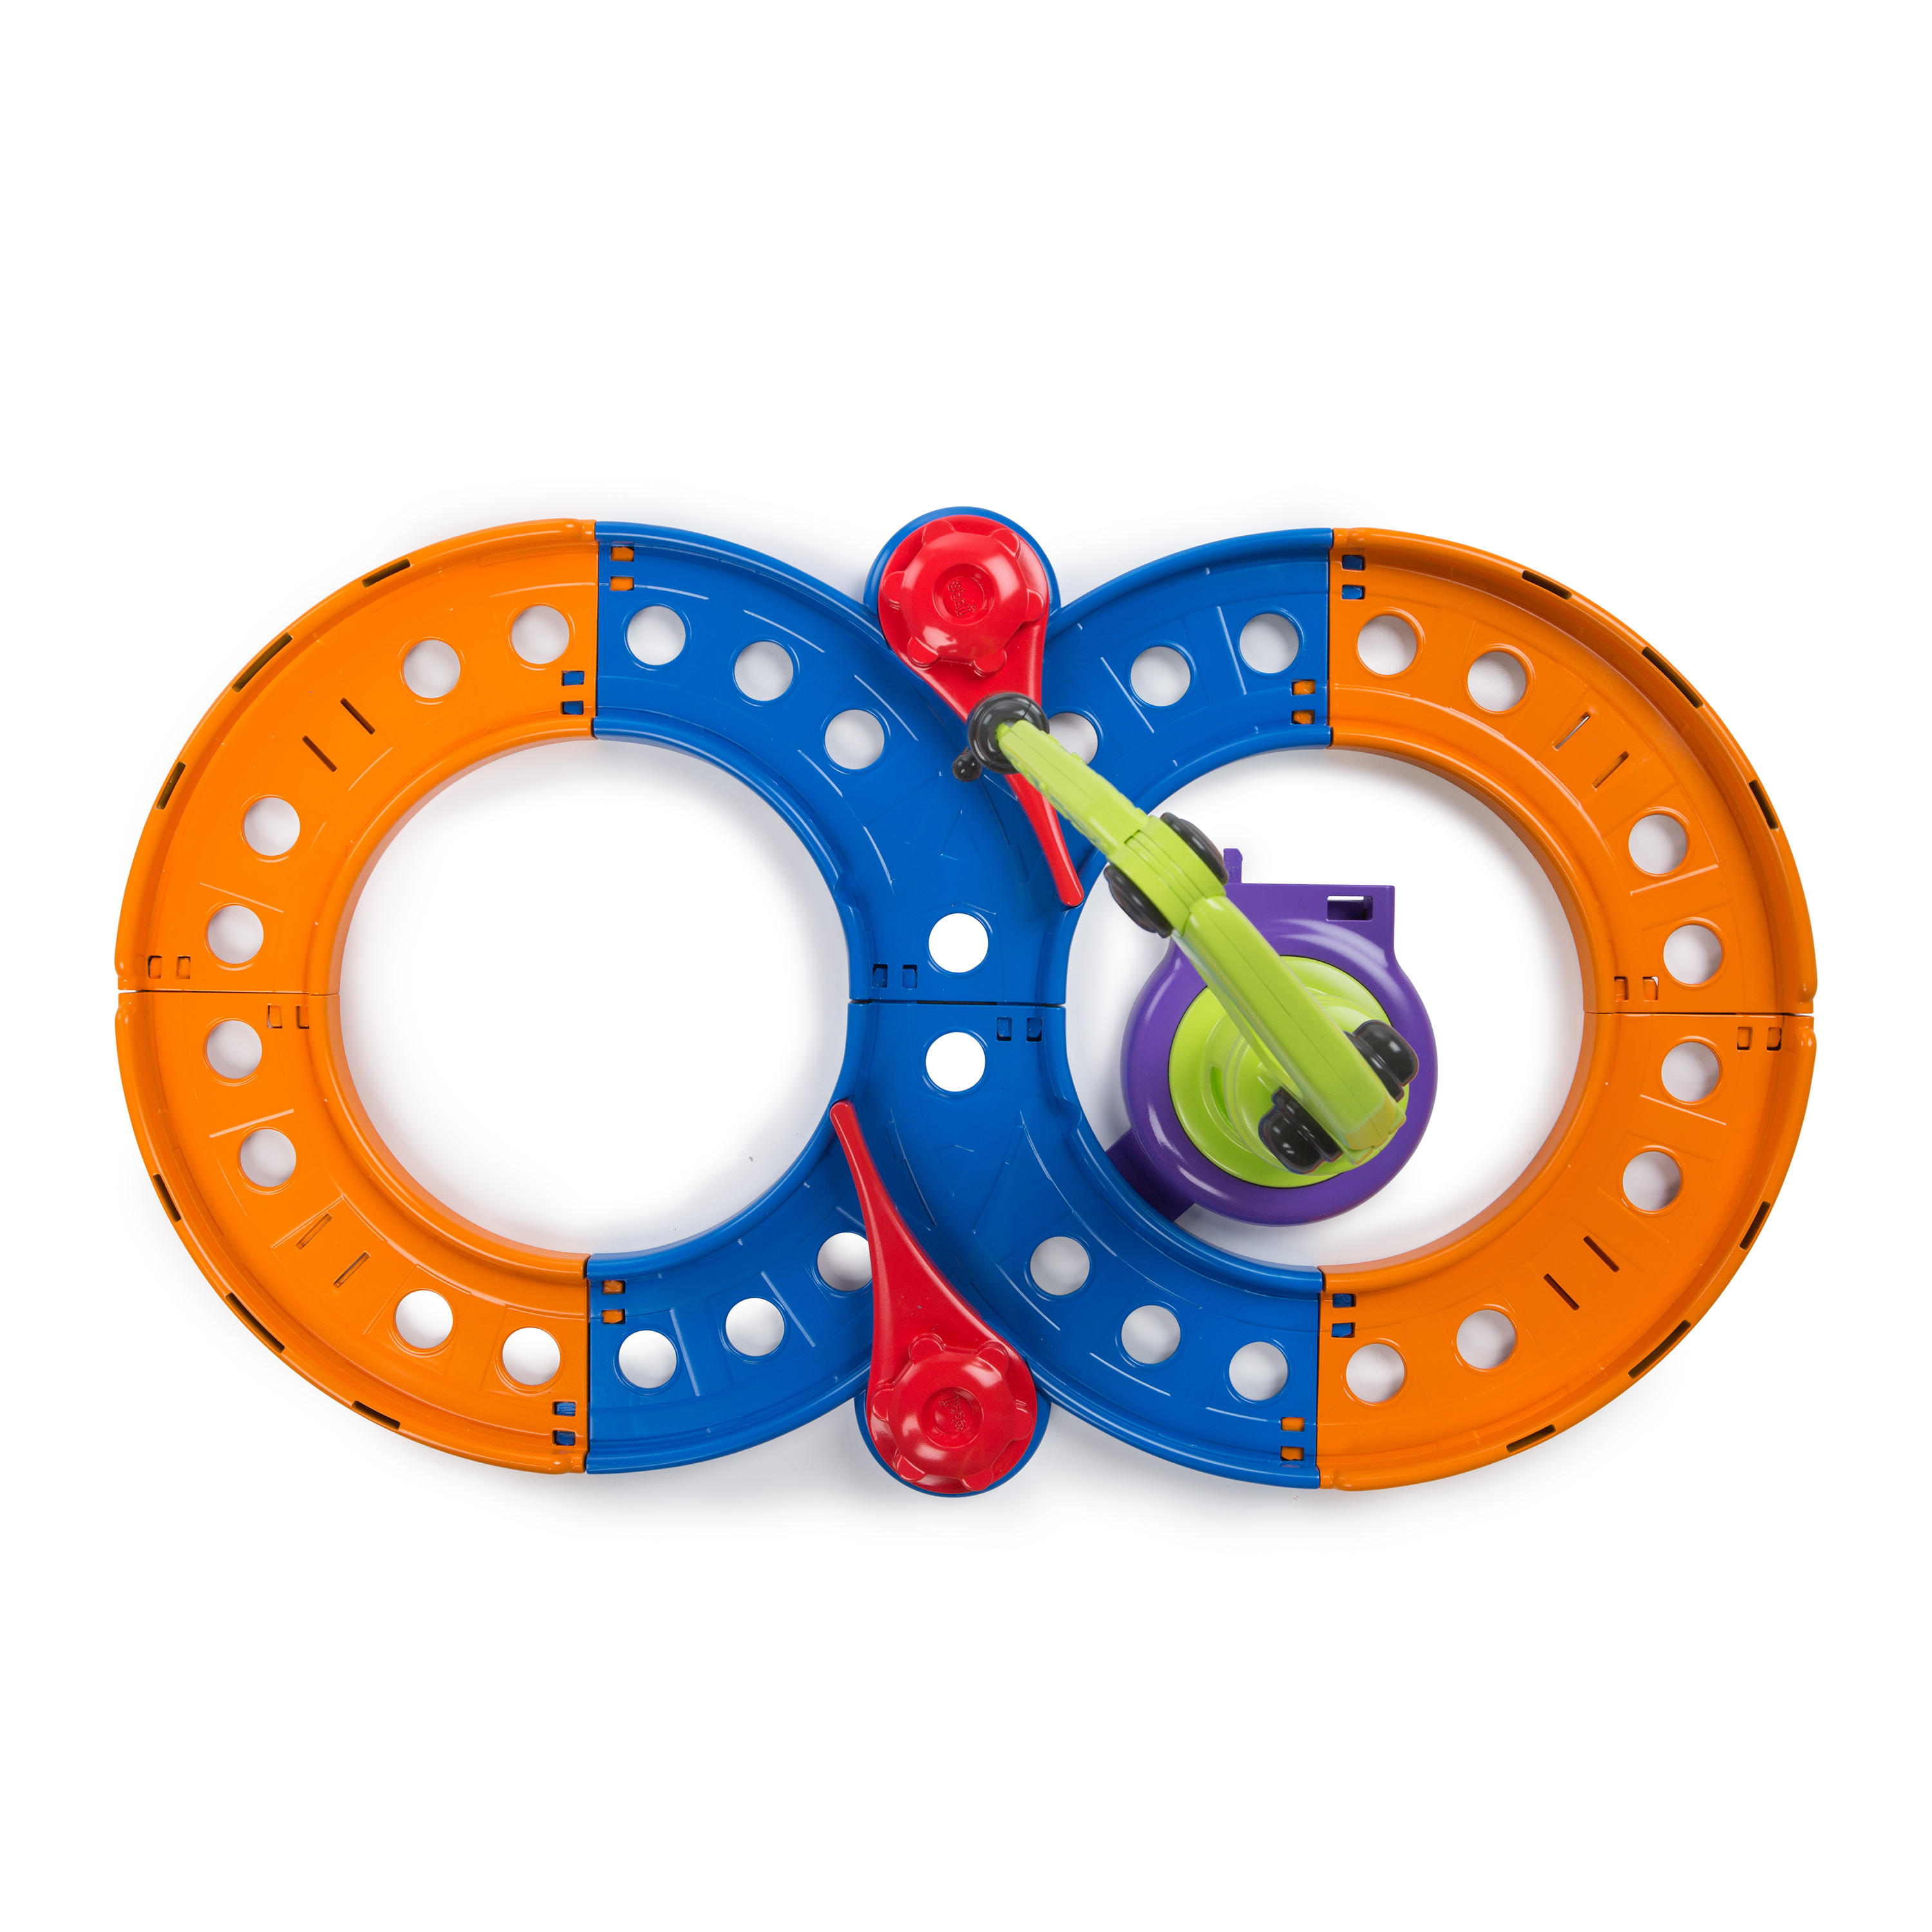 Go Grippers™ Grip, Launch & Roll Train